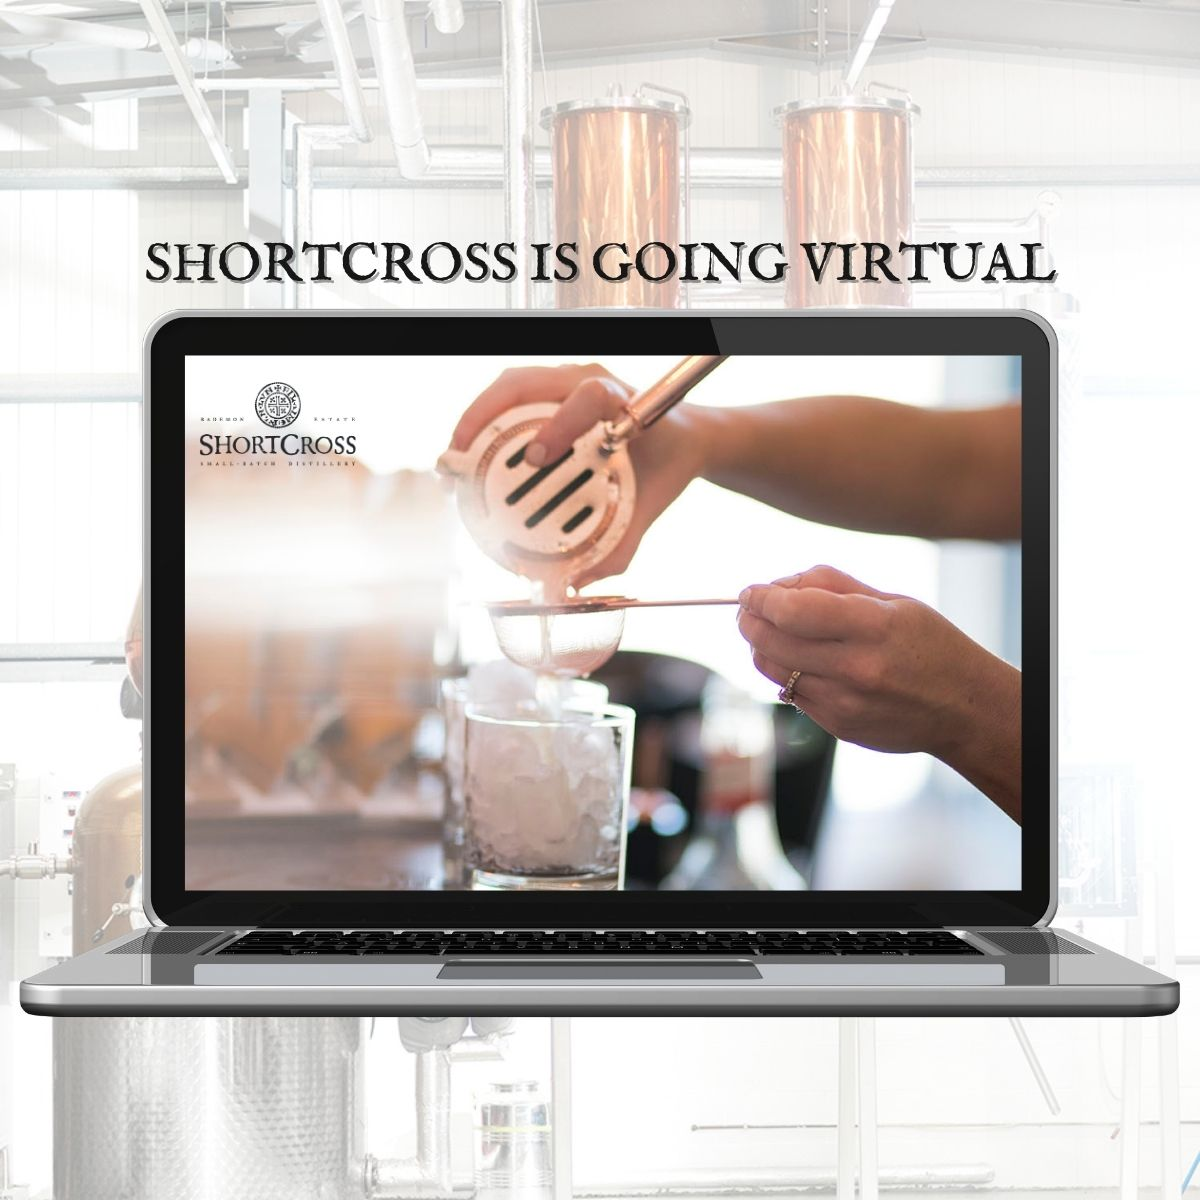 Shortcross Is Going Virtual